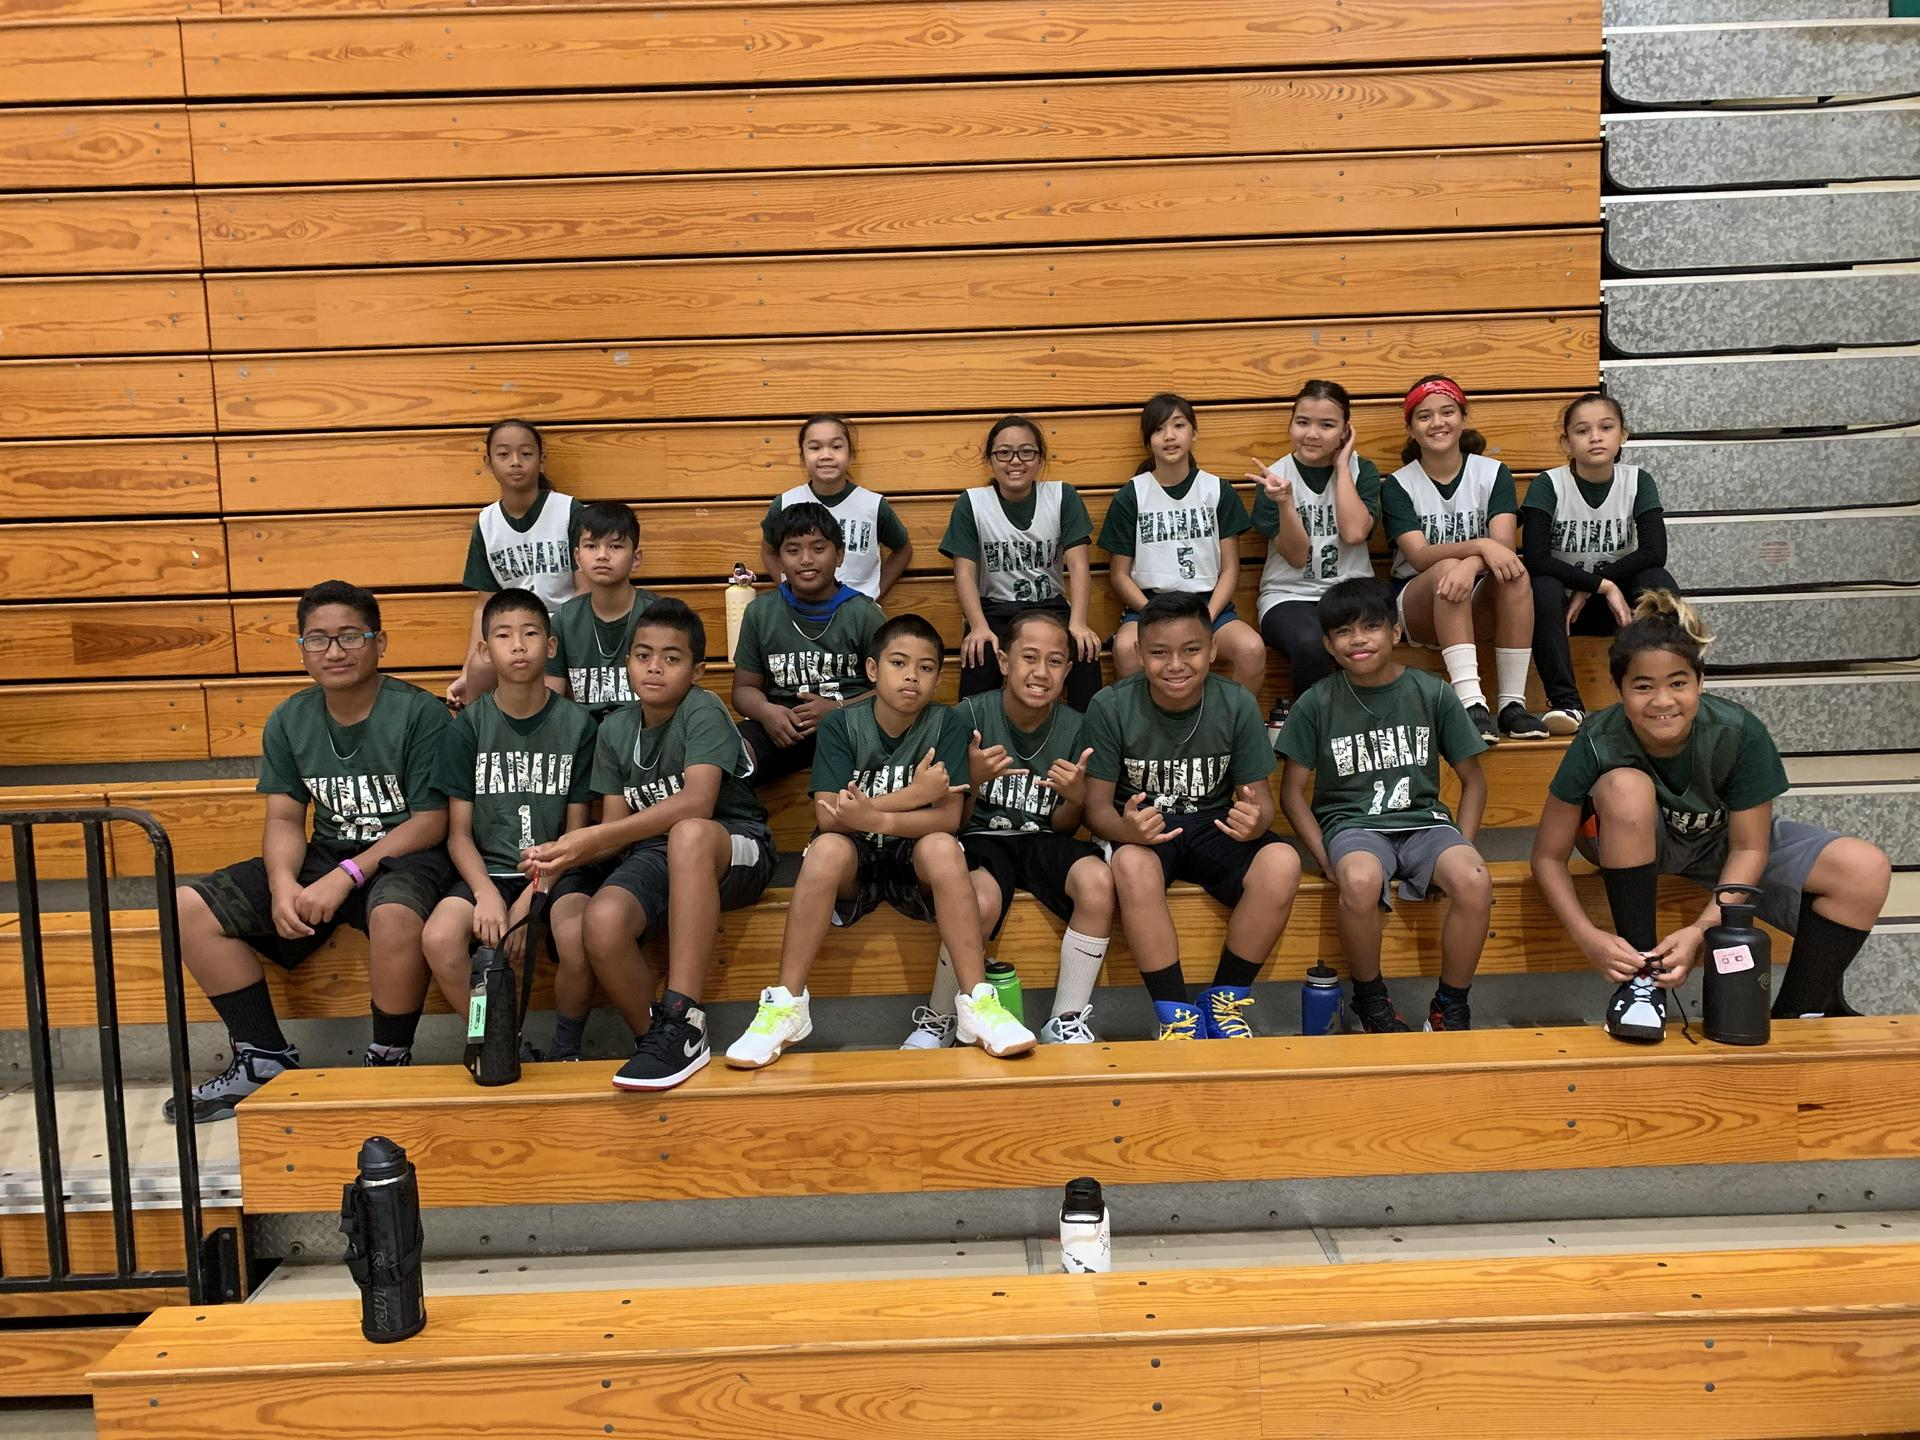 Photo of the basketball team, school year 2019-20.